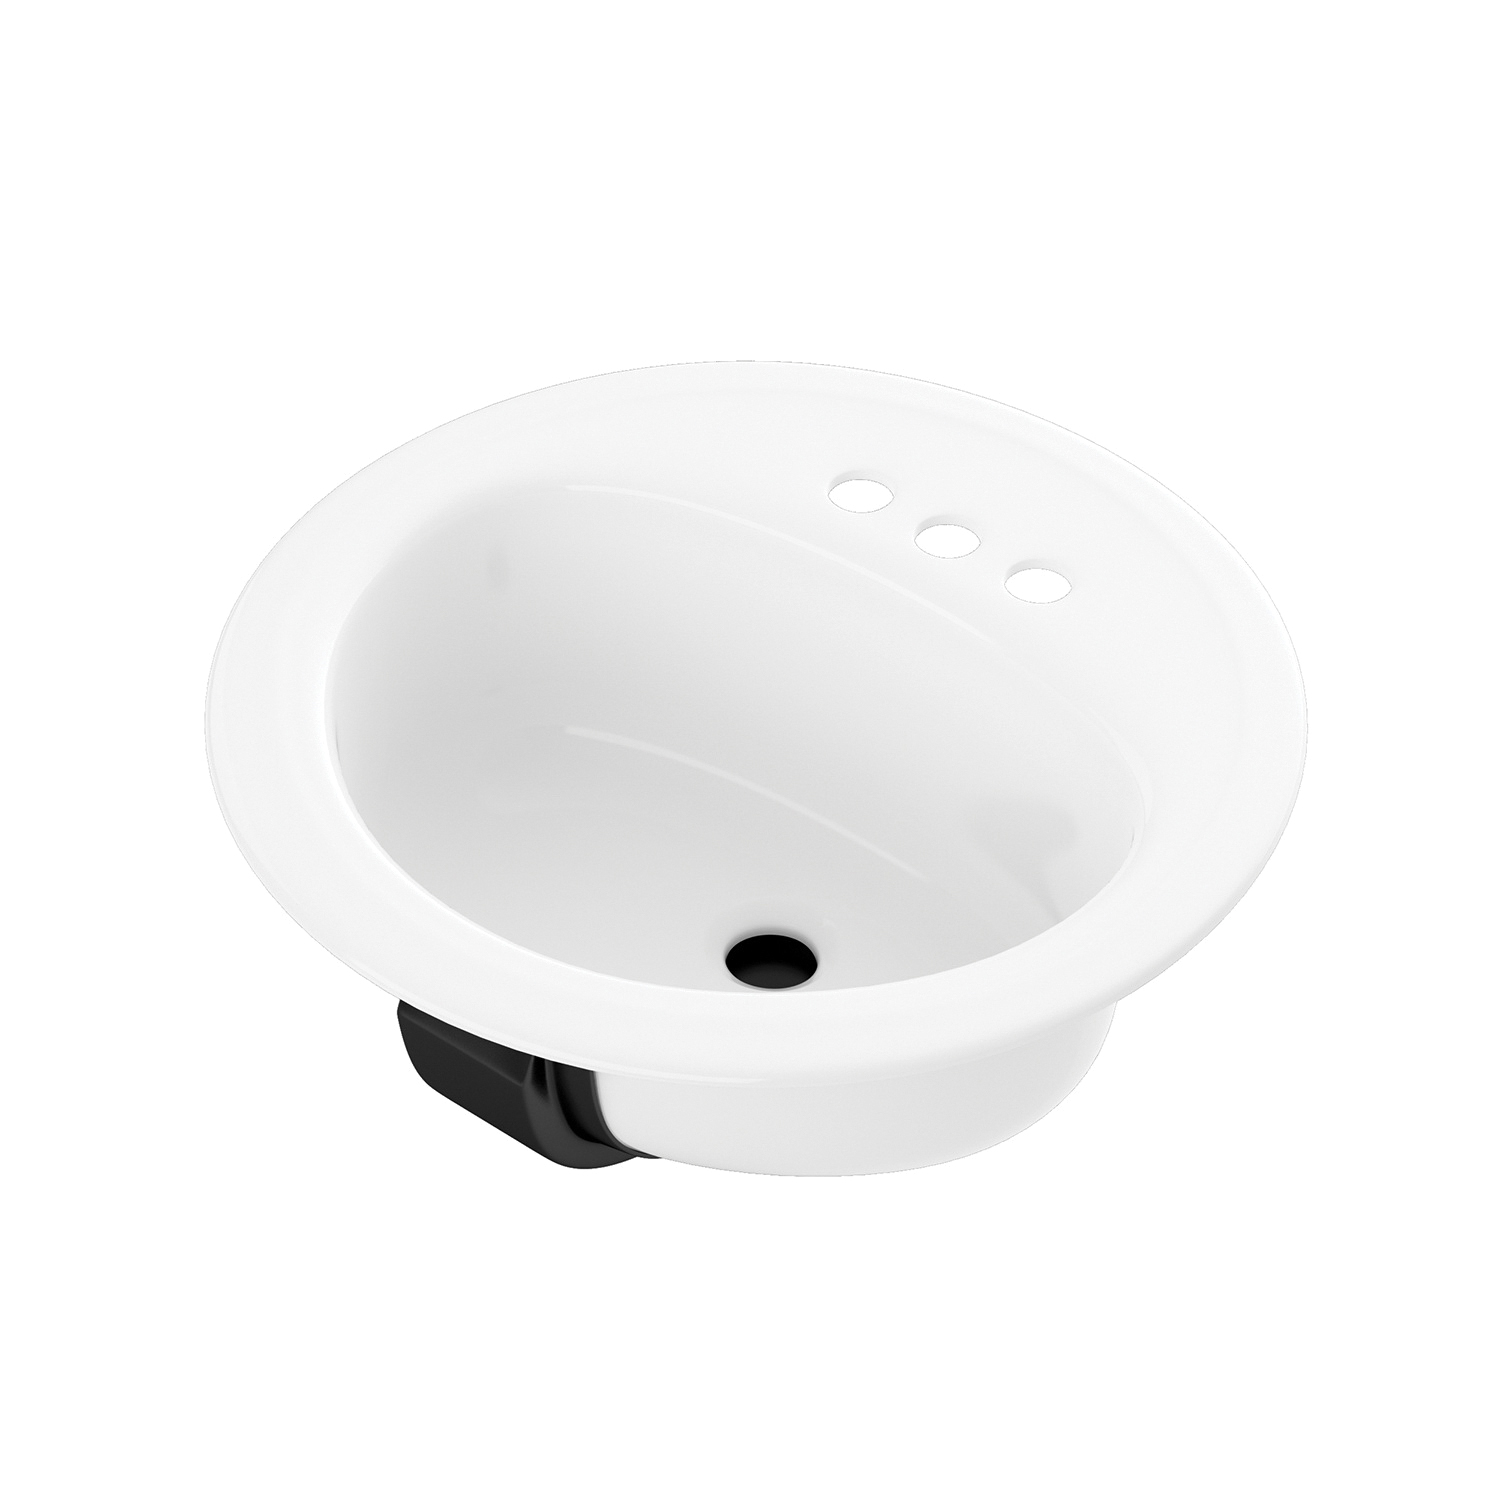 BOOTZ® 021-2435-00 Self-Rimming Centerset Punch Lavatory Sink, Laurel, Round Shape, 4 in Faucet Hole Spacing, 19 in W x 7-13/16 in H, Flat Surface Mount, Porcelain/Steel, White, Domestic